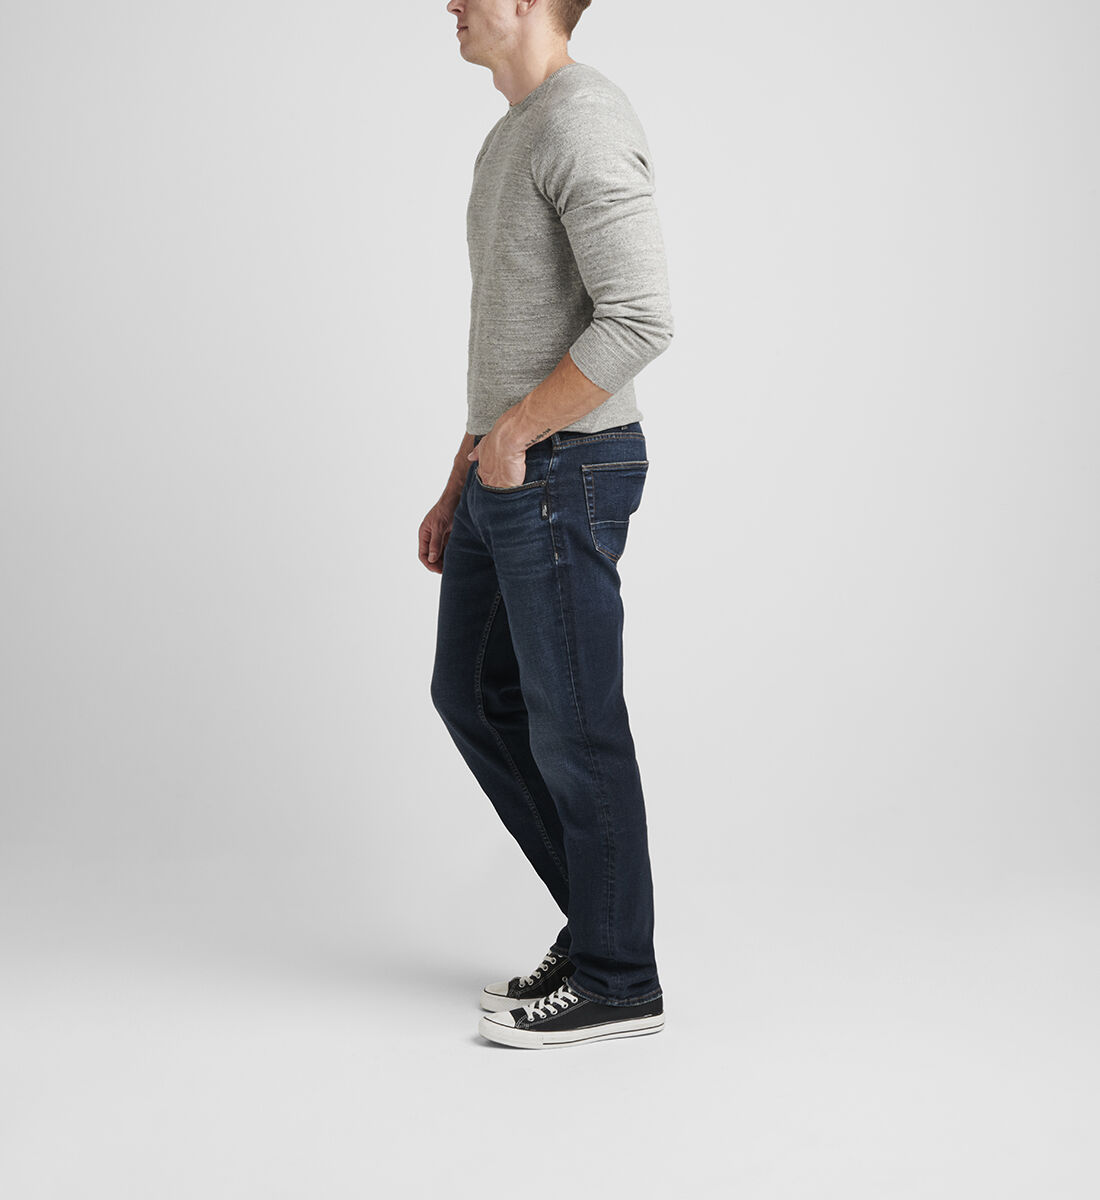 Machray Classic Fit Straight Leg Jeans Side